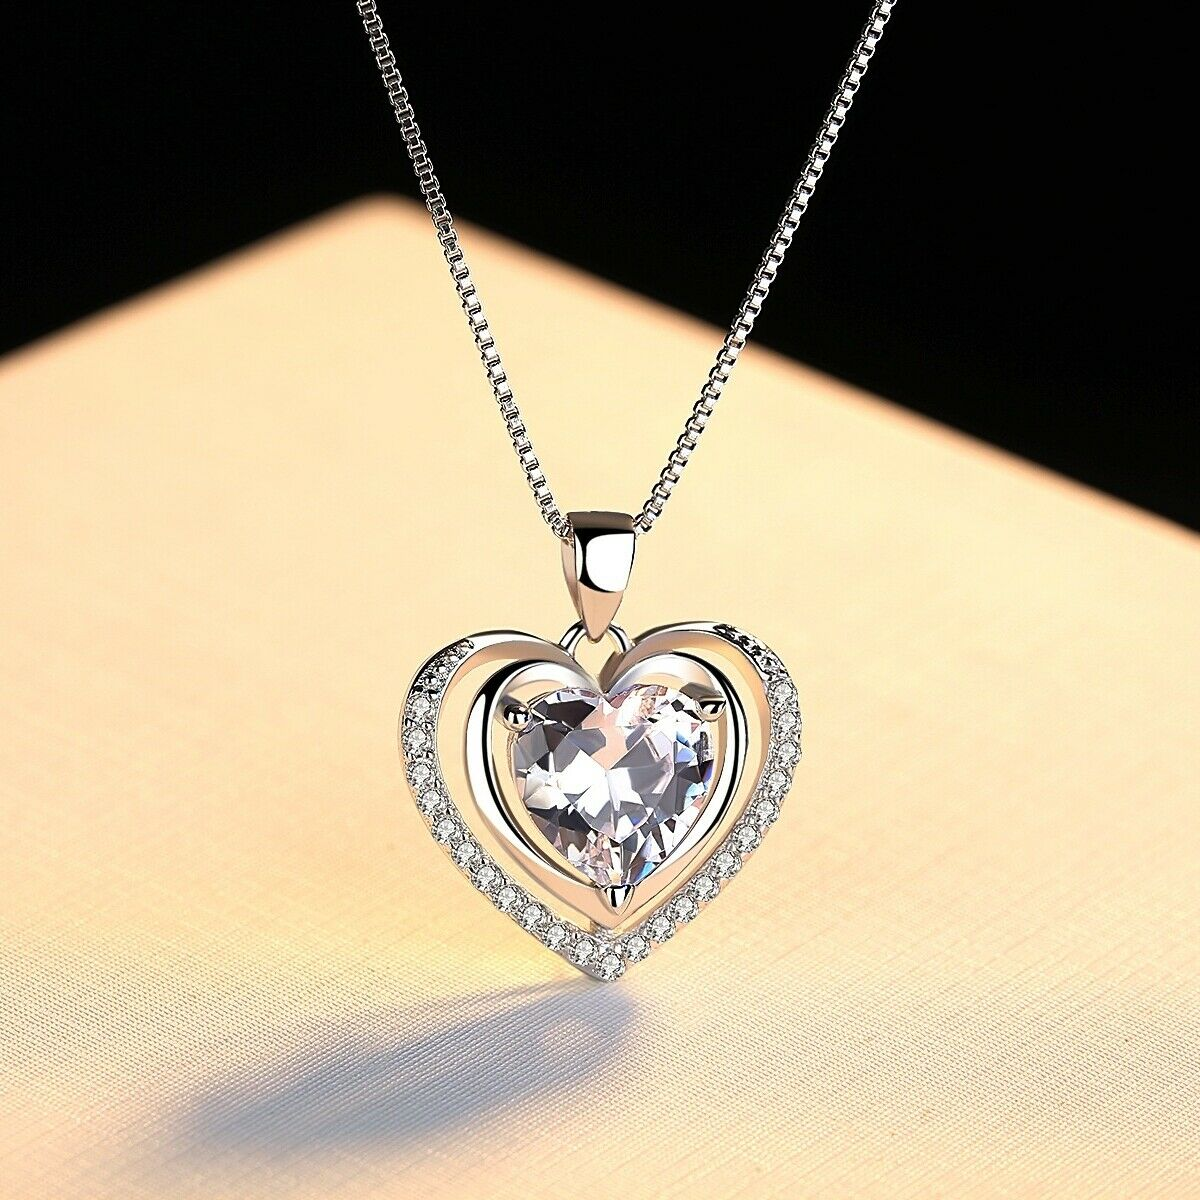 Jewellery - 925 Sterling Silver Double Heart Stone Chain Pendant Necklace Womens Jewellery